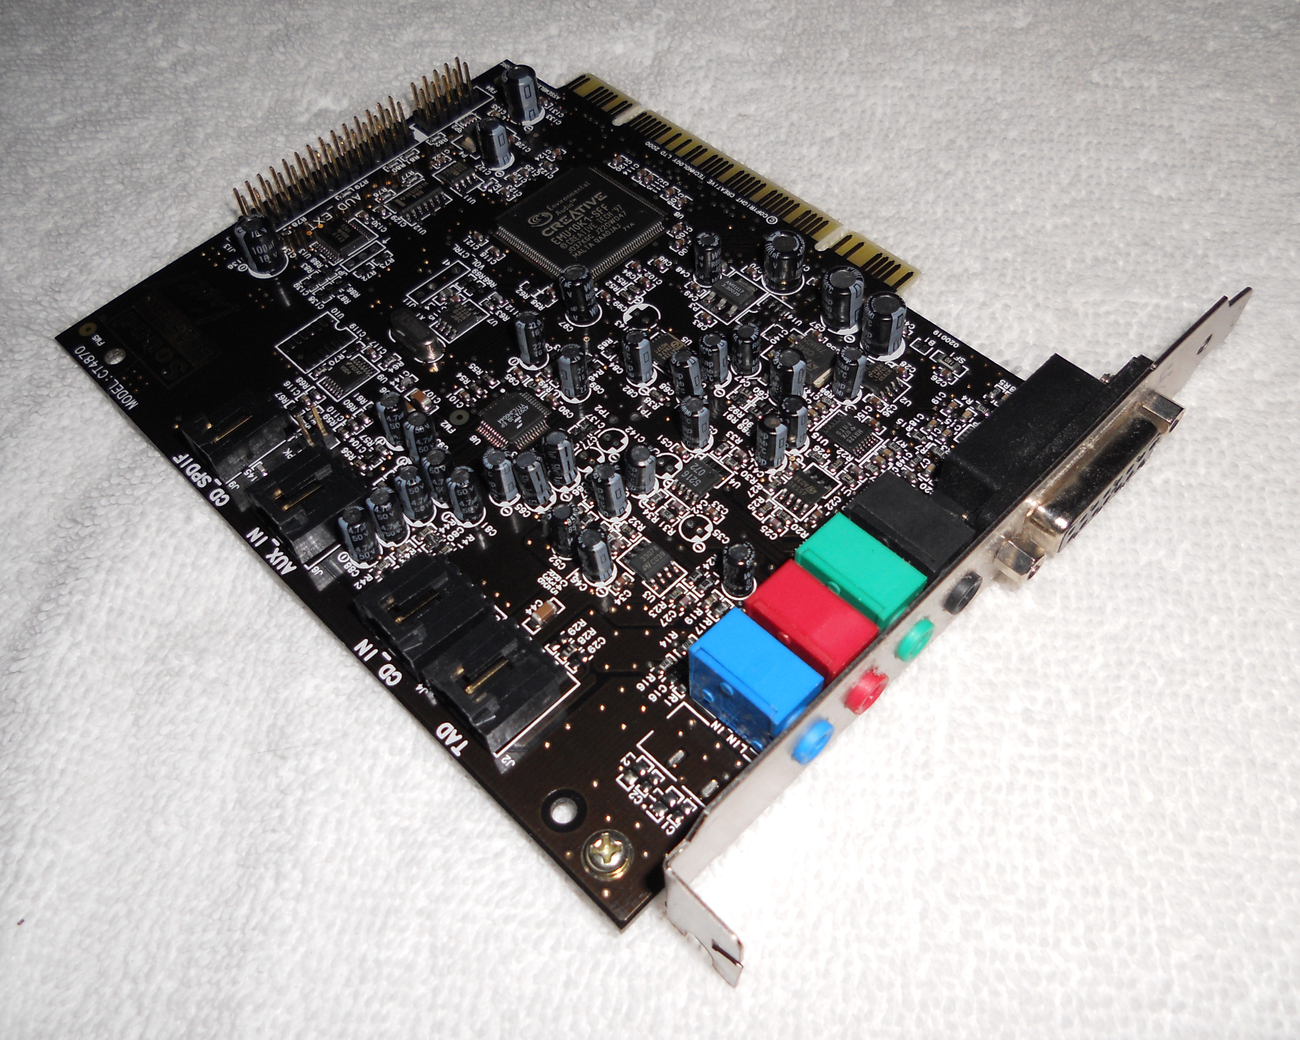 Buy computers sound blasters - Creative Labs Sound Blaster LIVE! CT4870 PCI Card